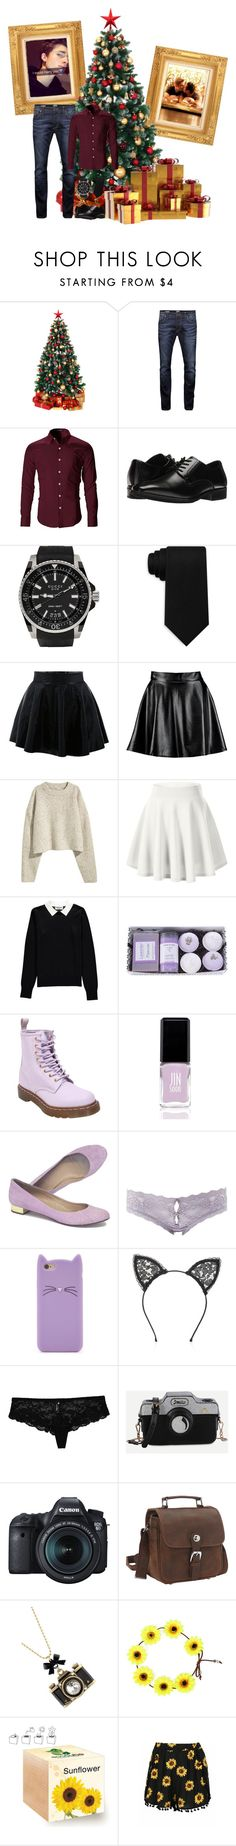 """Jake on Christmas Eve/Christmas"" by mikaela-madrid ❤ liked on Polyvore featuring Jack & Jones, Stacy Adams, Gucci, Tommy Hilfiger, Boohoo, Essentiel, Dr. Martens, JINsoon, J.Crew and Charlotte Russe"